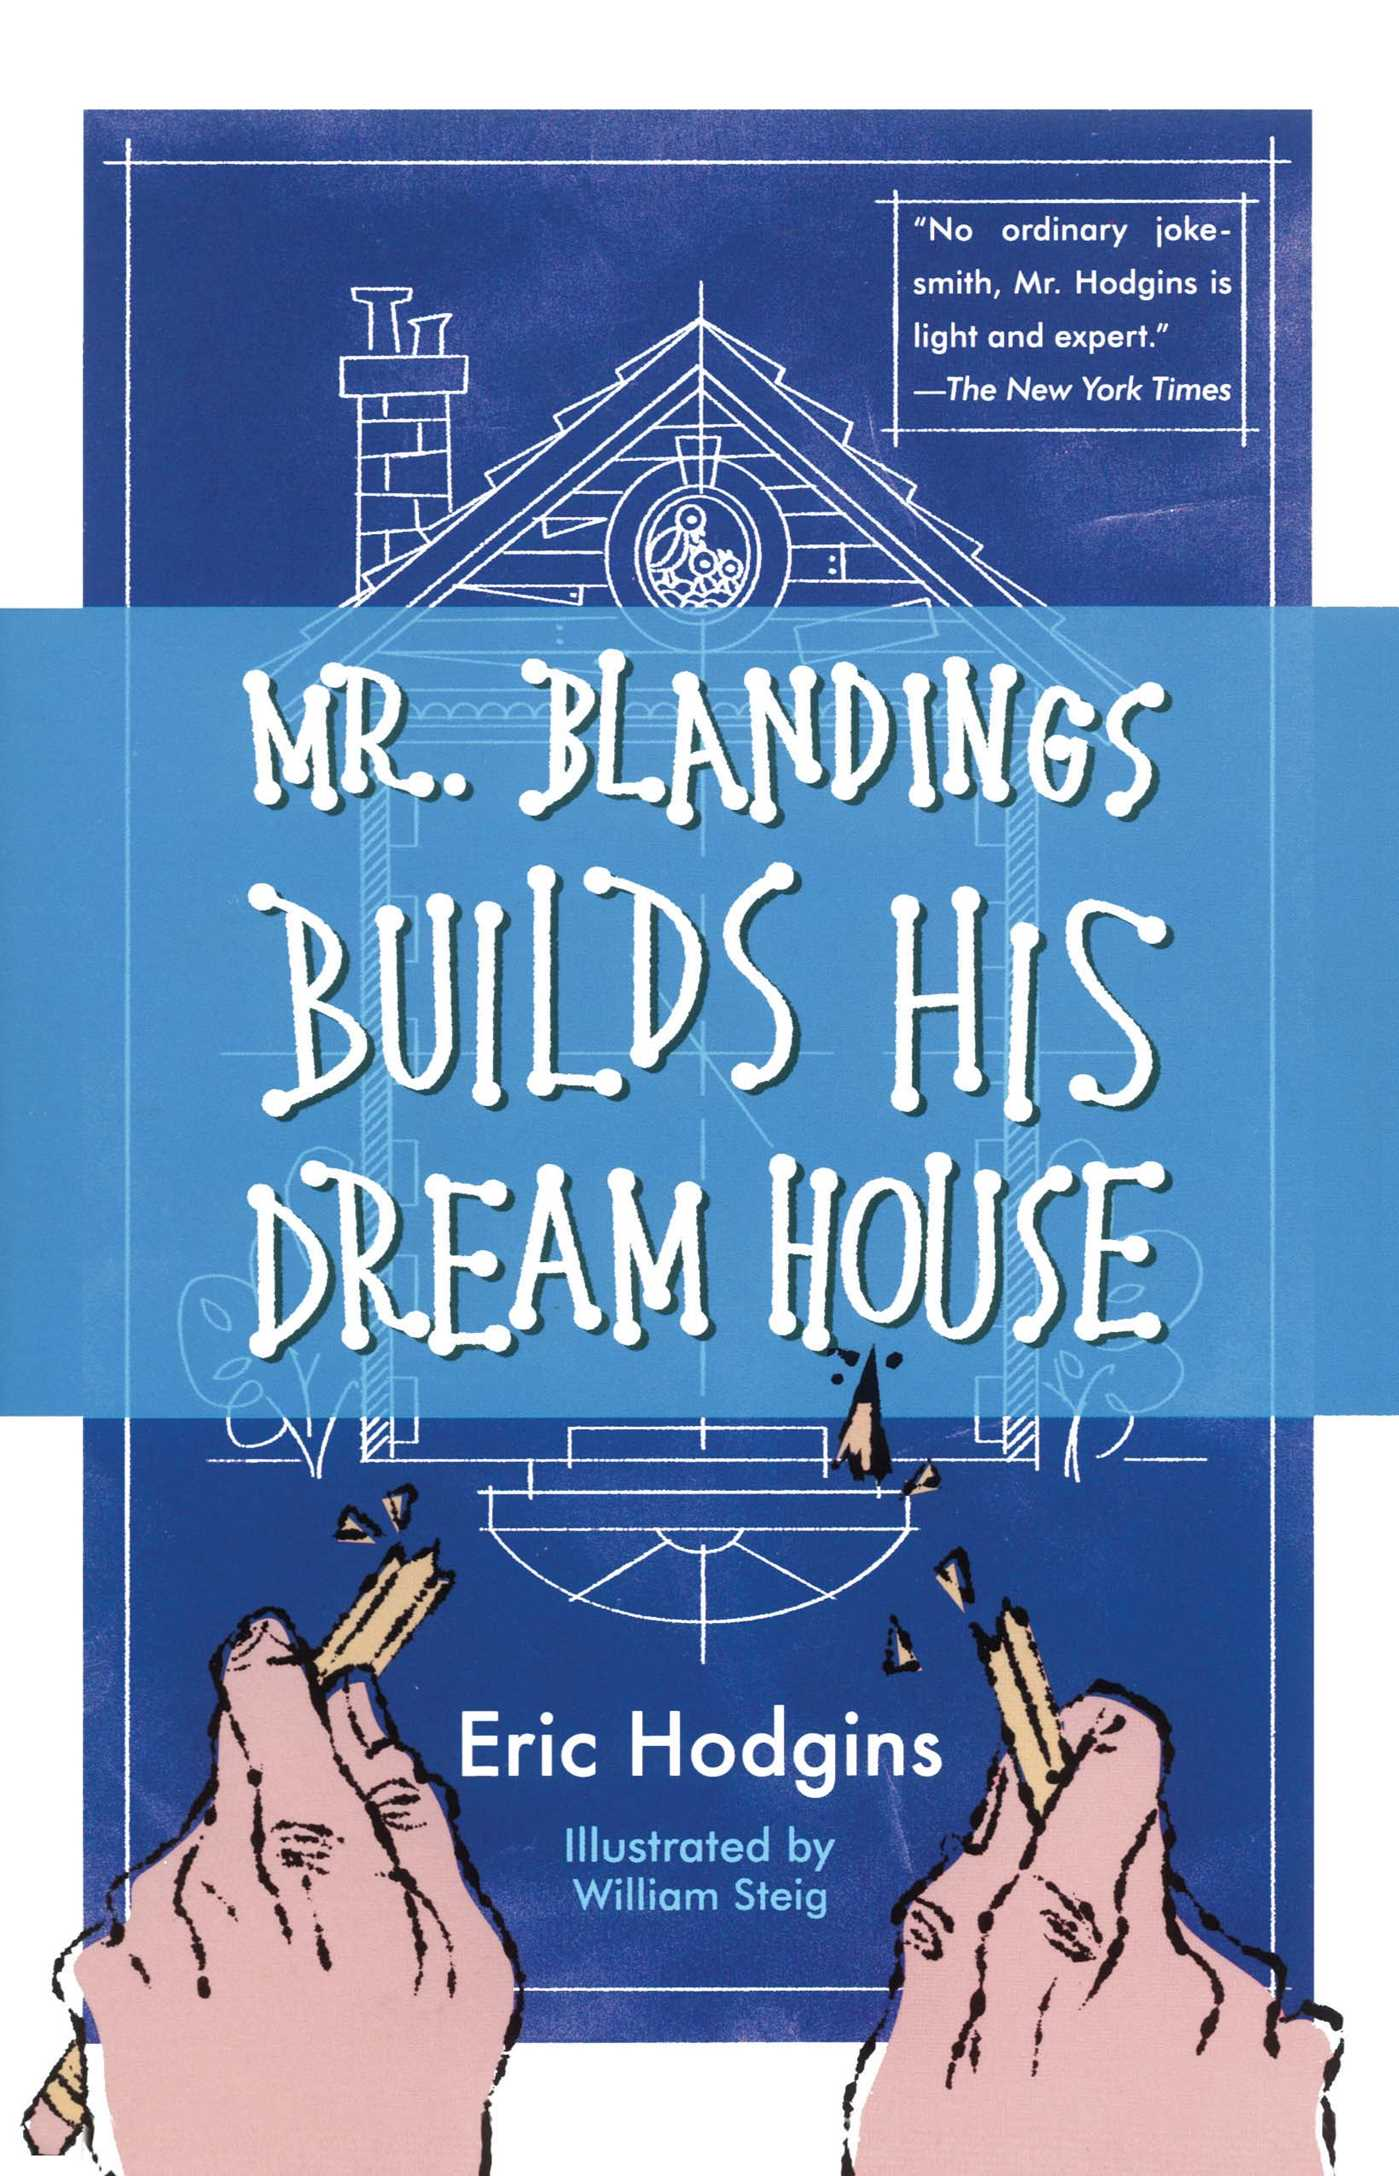 Mr blandings builds his dream house 9780743262323 hr